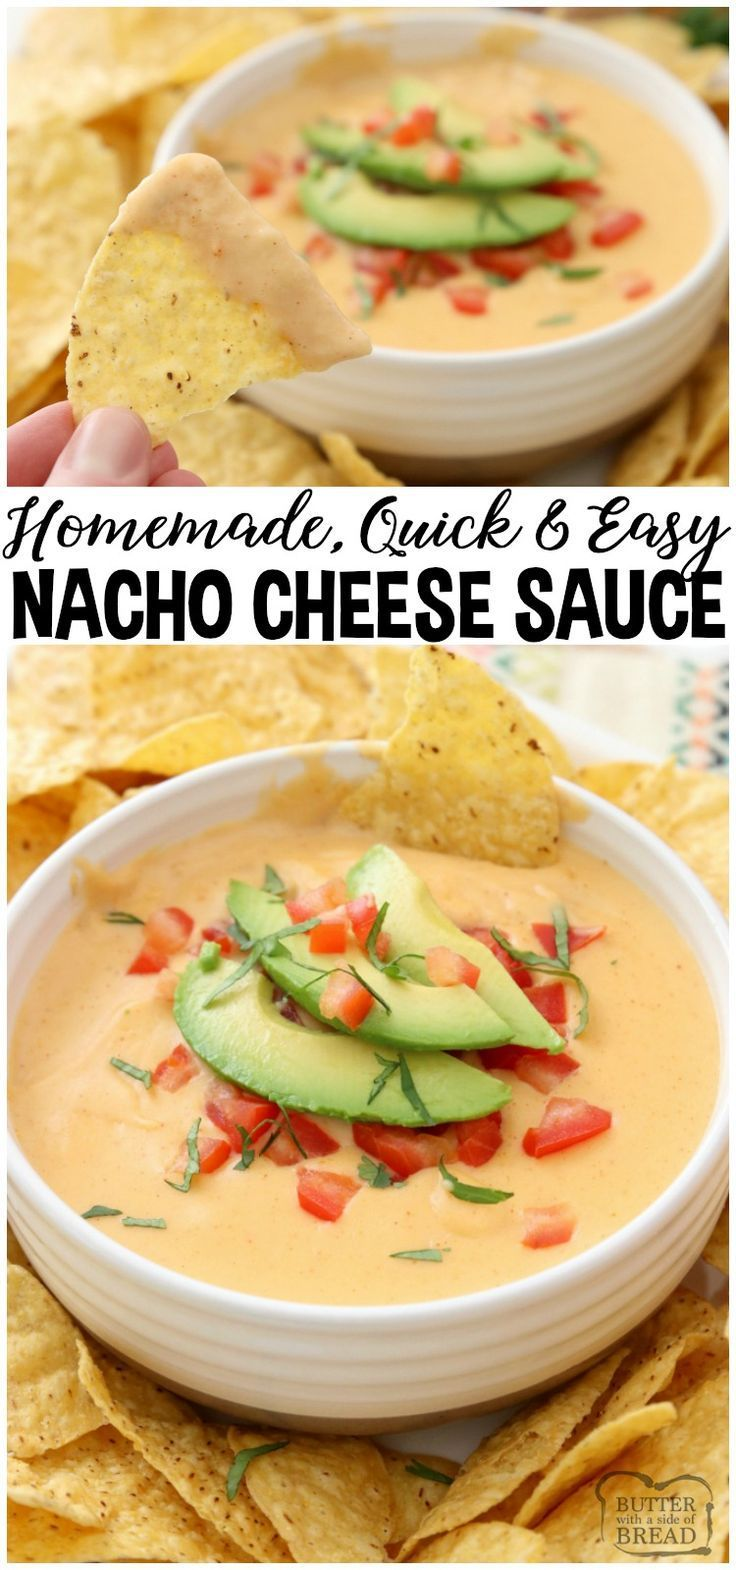 Easy Nacho Cheese sauce recipe with only 4 ingredients and is made in minutes! Smooth, creamy with